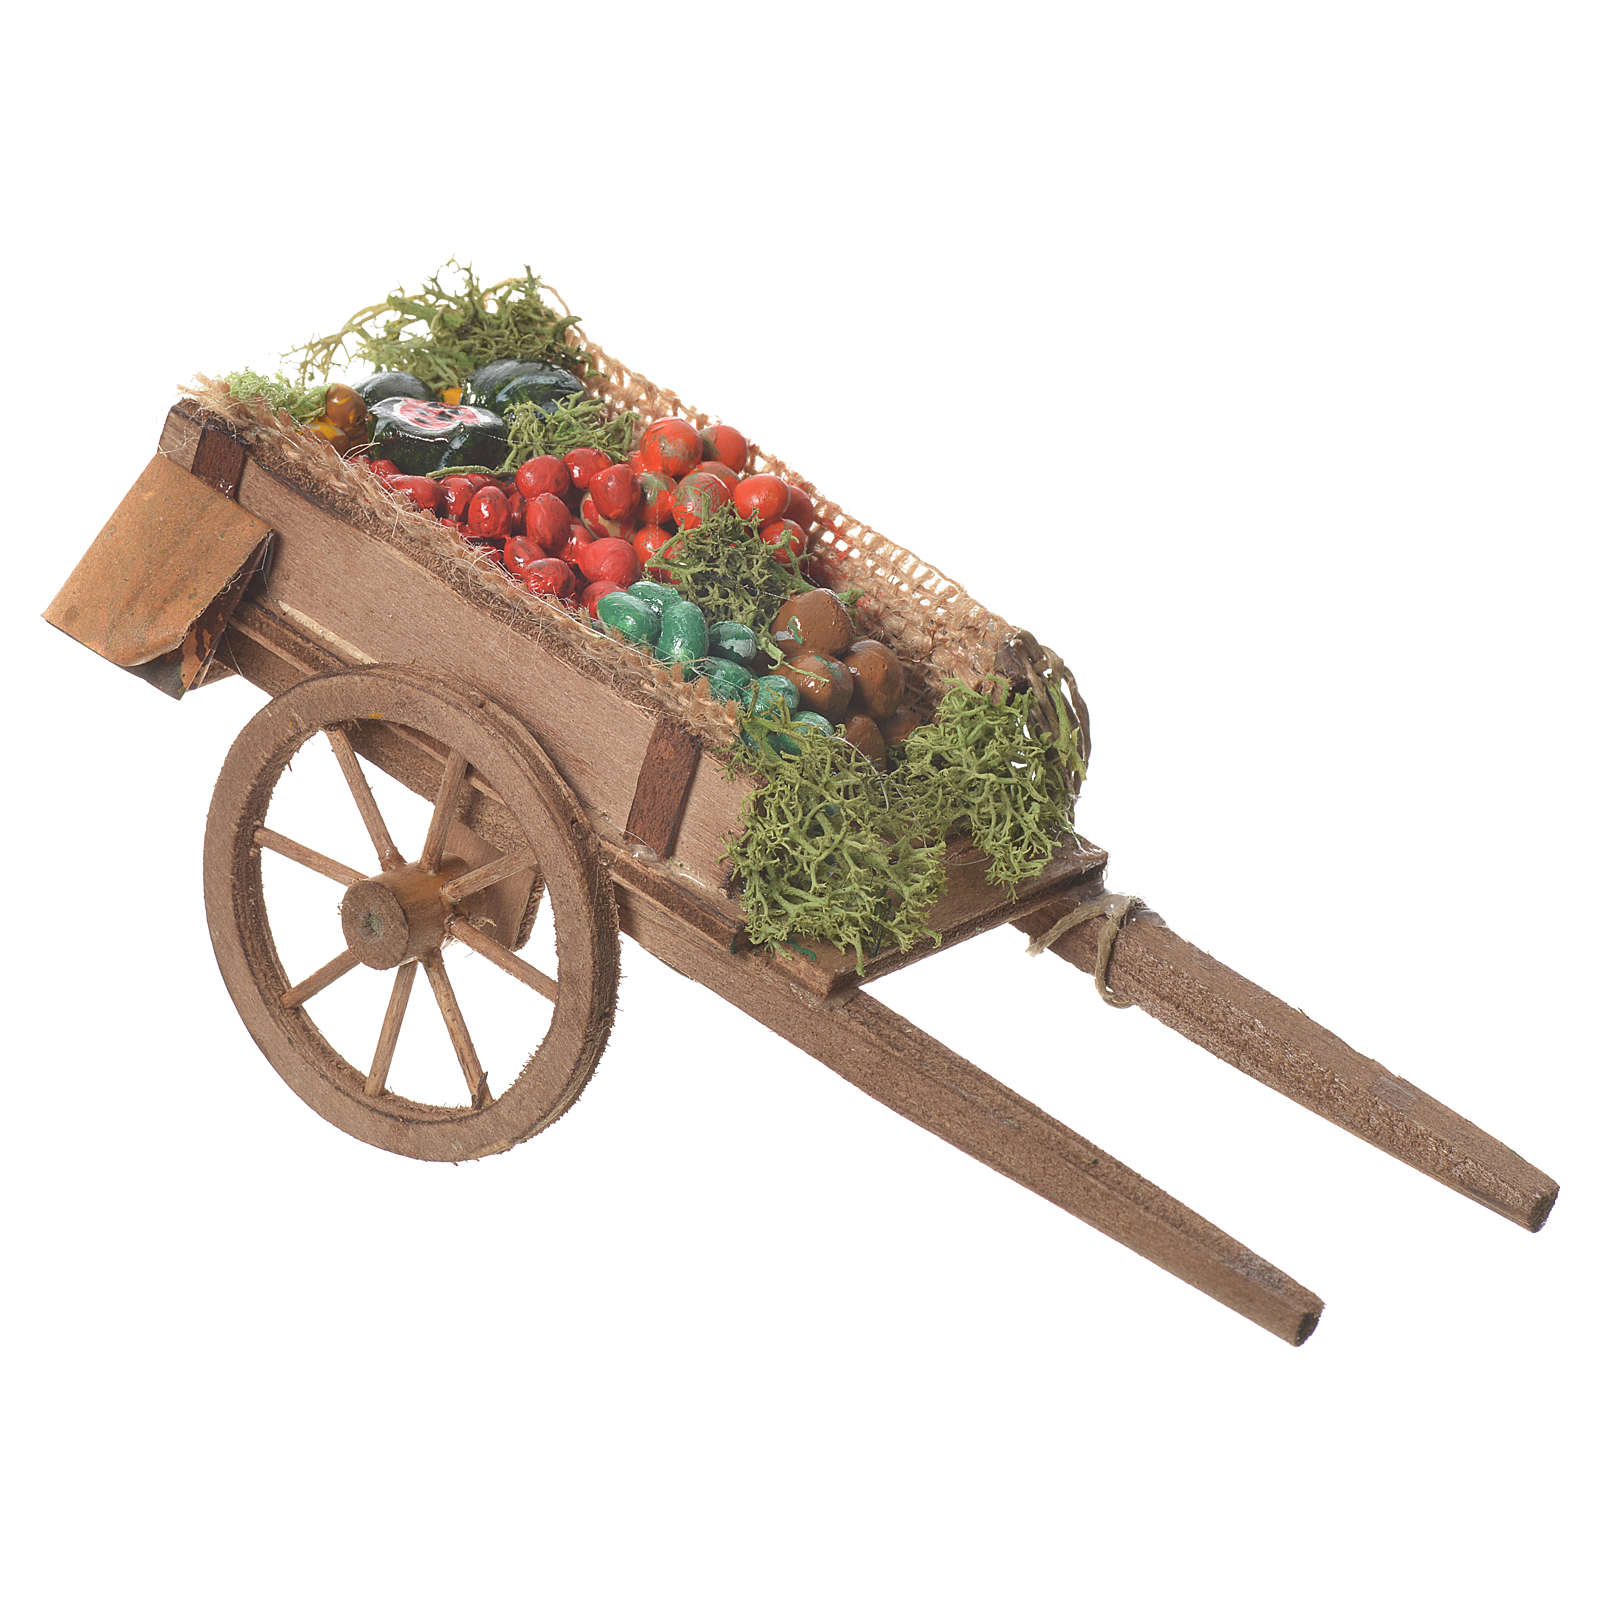 Neapolitan nativity accessory, loose fruit cart 18x6cm 4